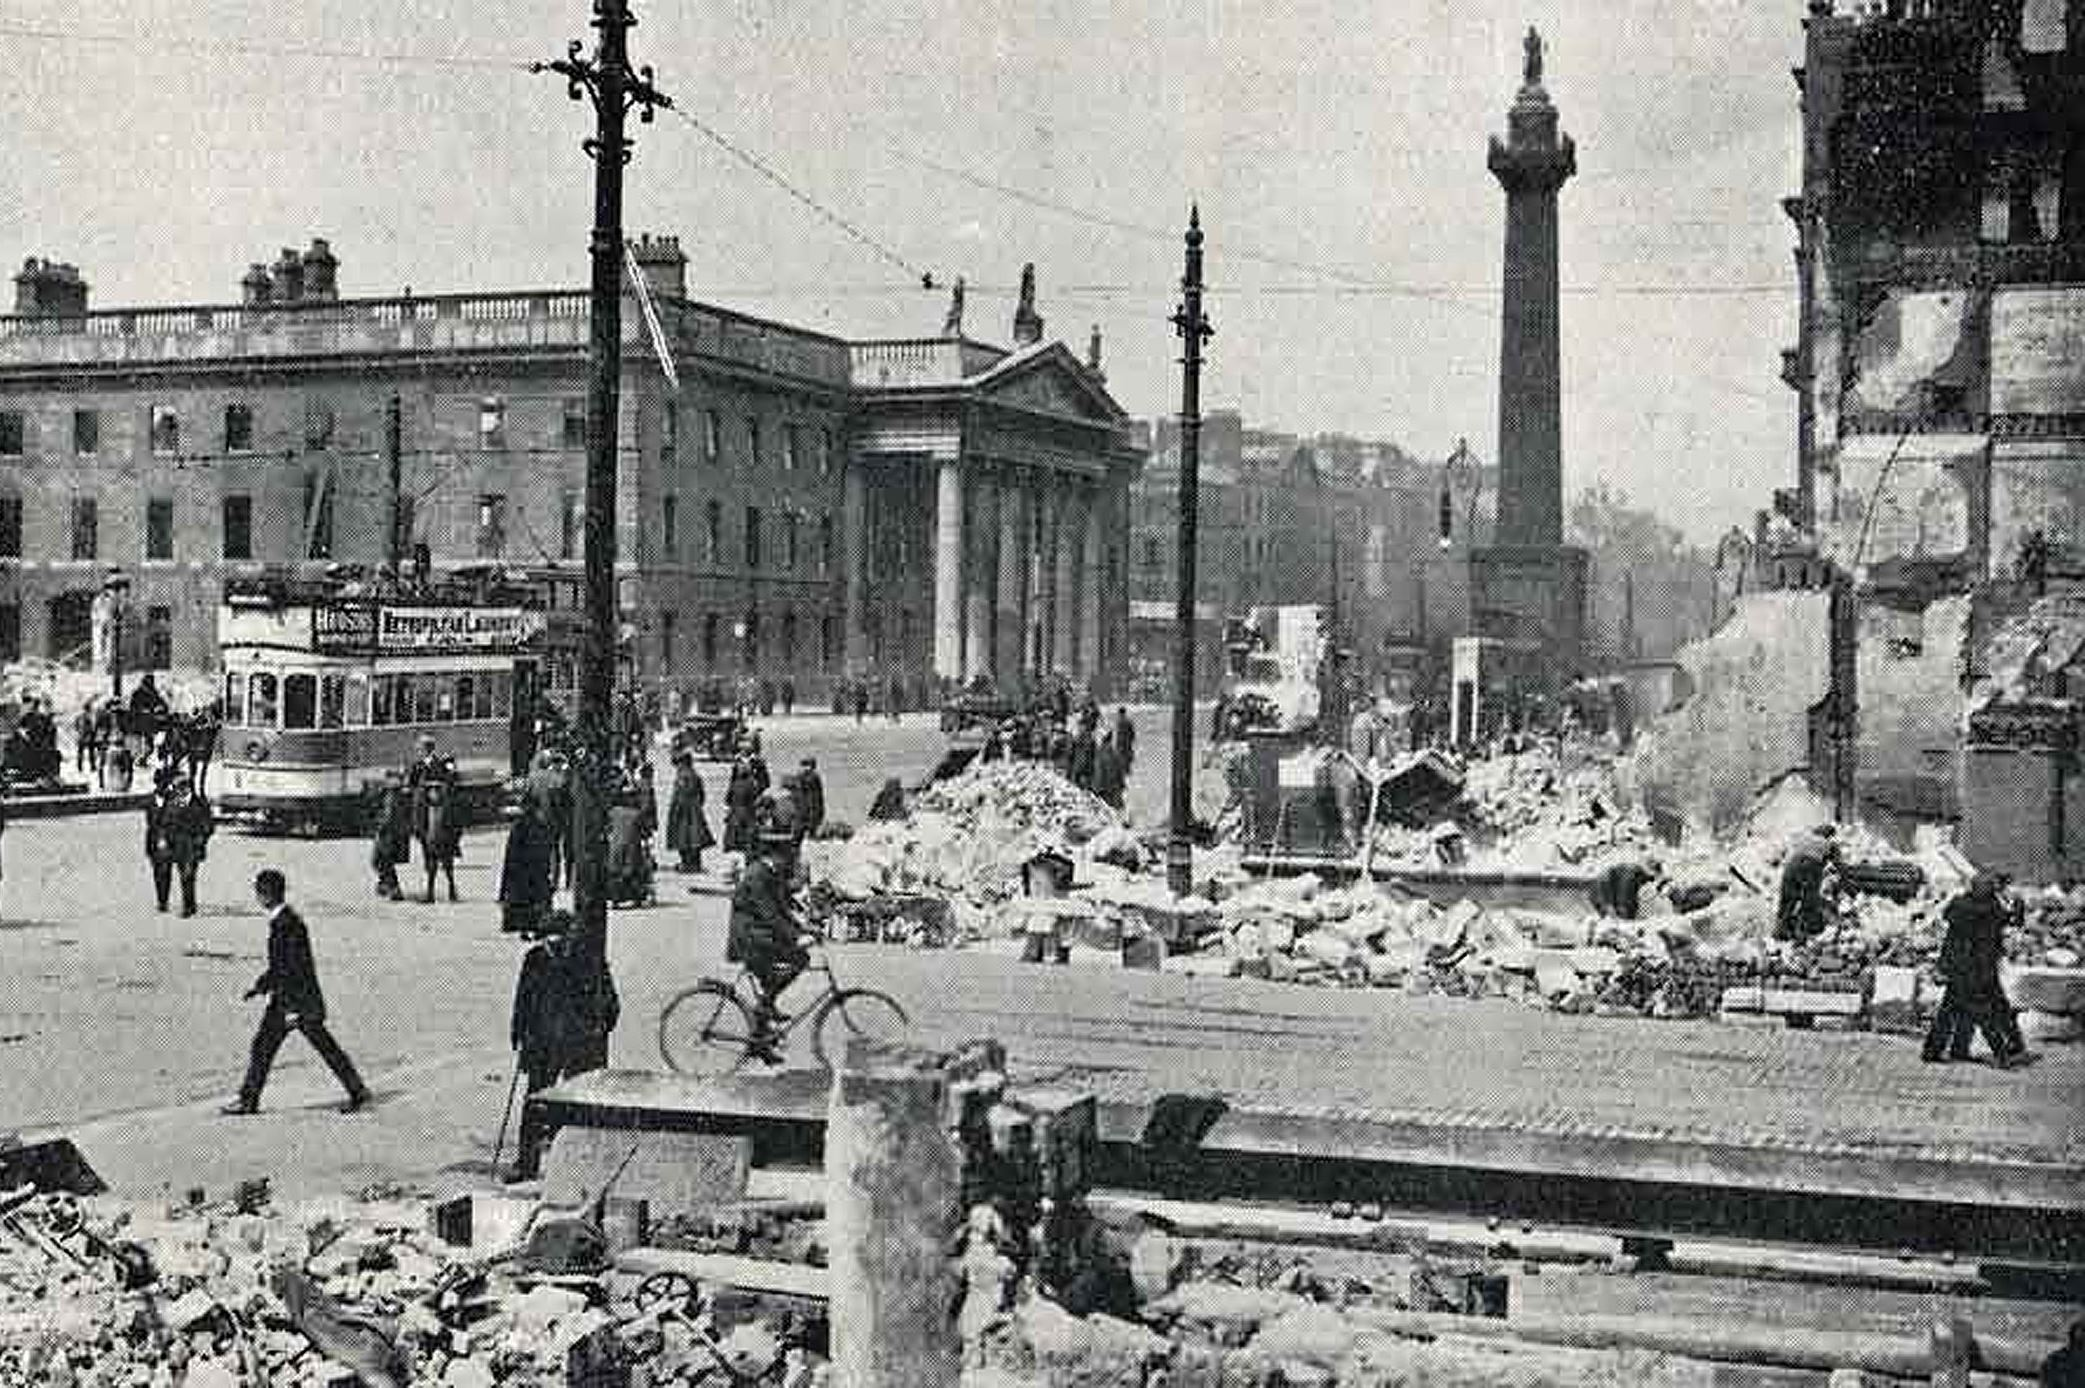 easter rising 1916 Perhaps the most controversial aspect of the easter rising of april 24, 1916, was its legacy.